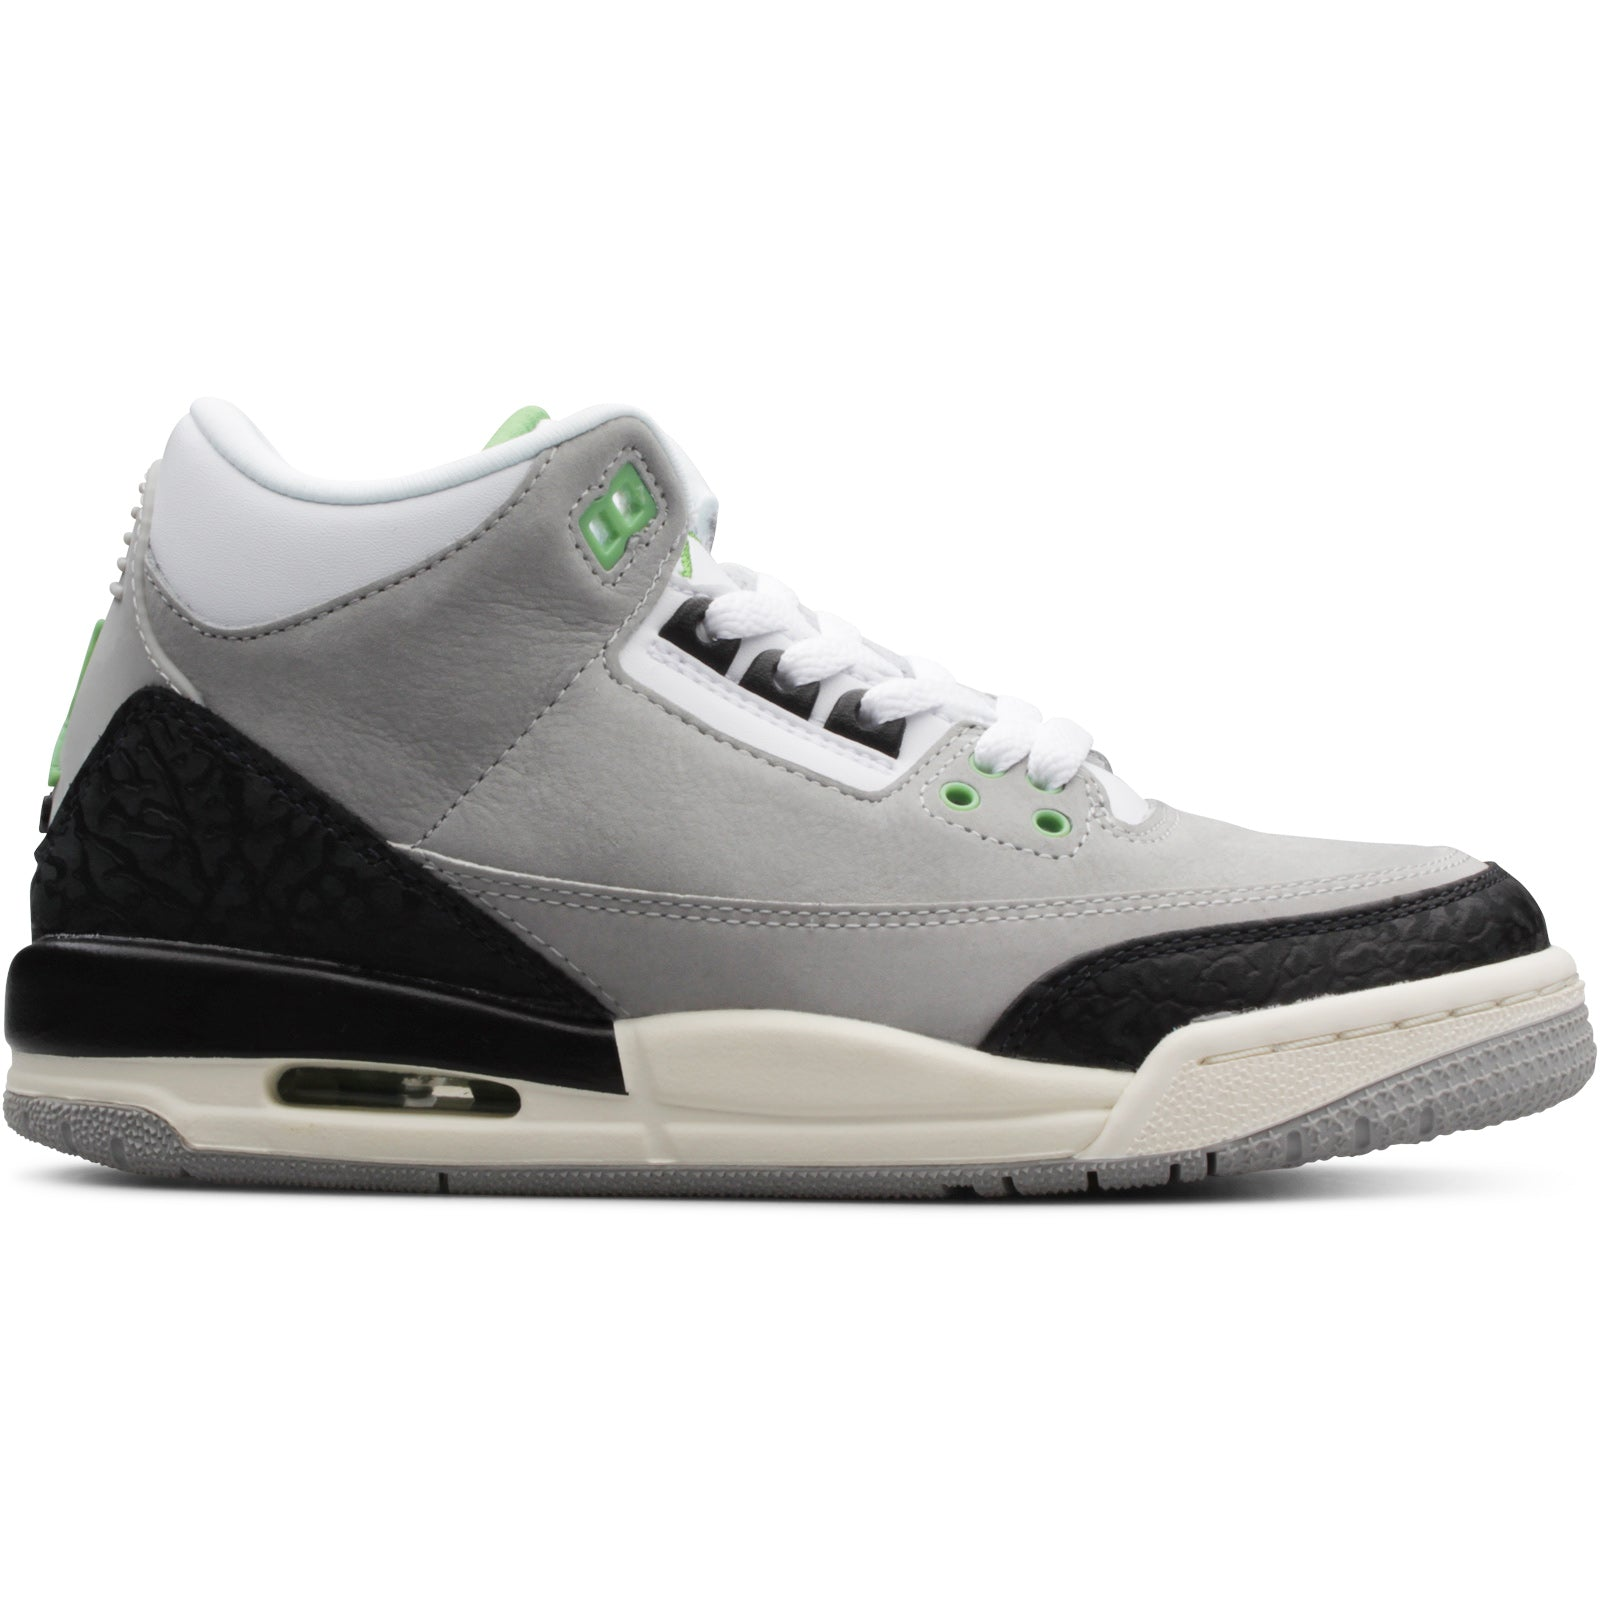 9d3f51e033590 11/10/2018: Air Jordan 3 Retro (GS) – Bodega